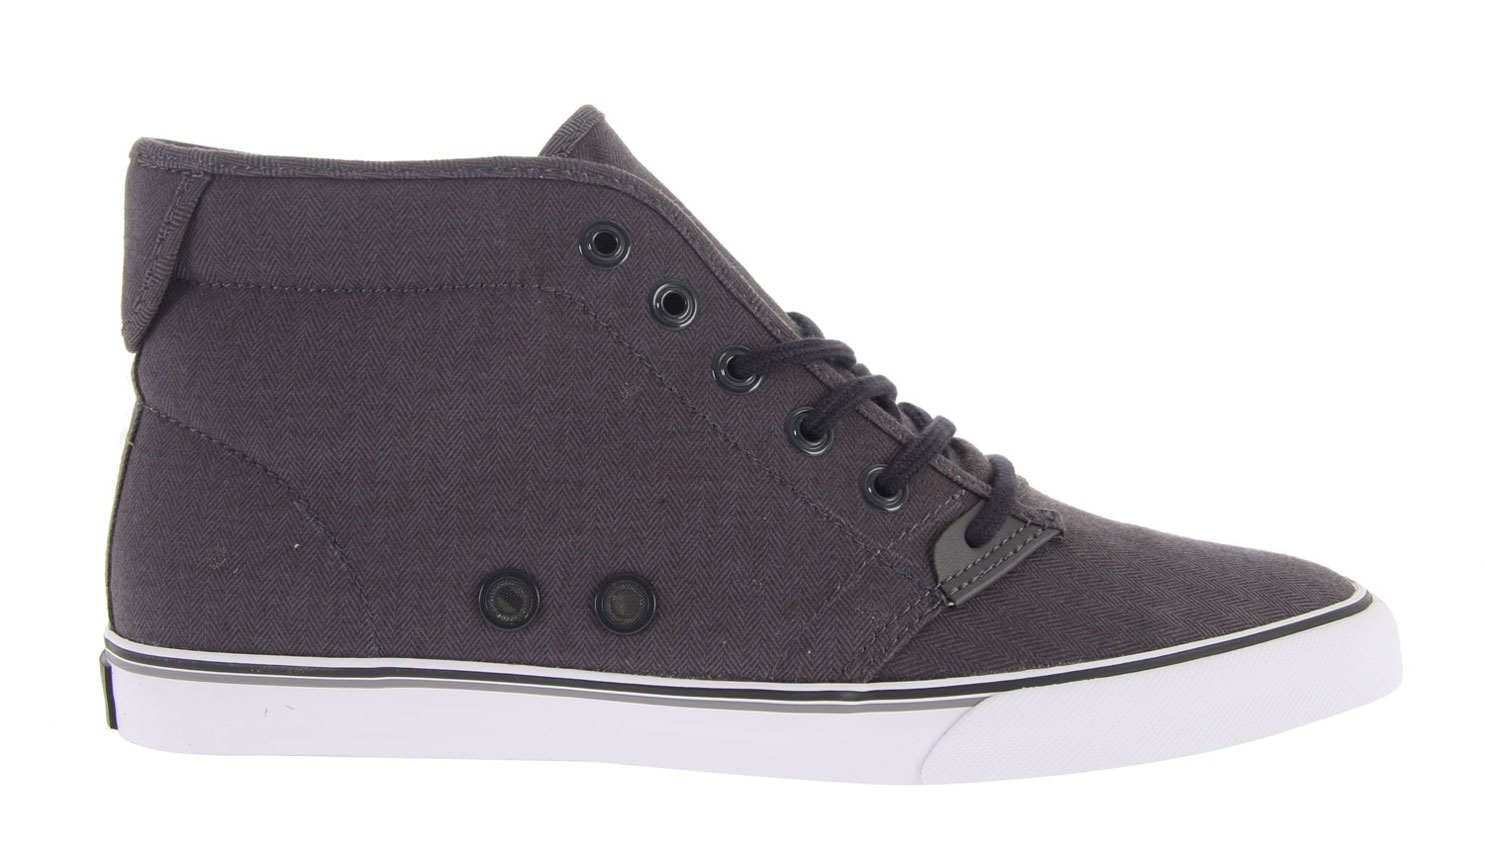 Skateboard The Gravis Slymz Mid Skate Shoes is a slim fit mid top in seasonal colors.Key Features of the Gravis Slymz Mid Skate Shoes: Soft Canvas Uppers Canvas Lining Double Stripe Foxing Latex With Rubber Heel Wedge Footbed High Traction Molded Rubber Outsole - $38.95